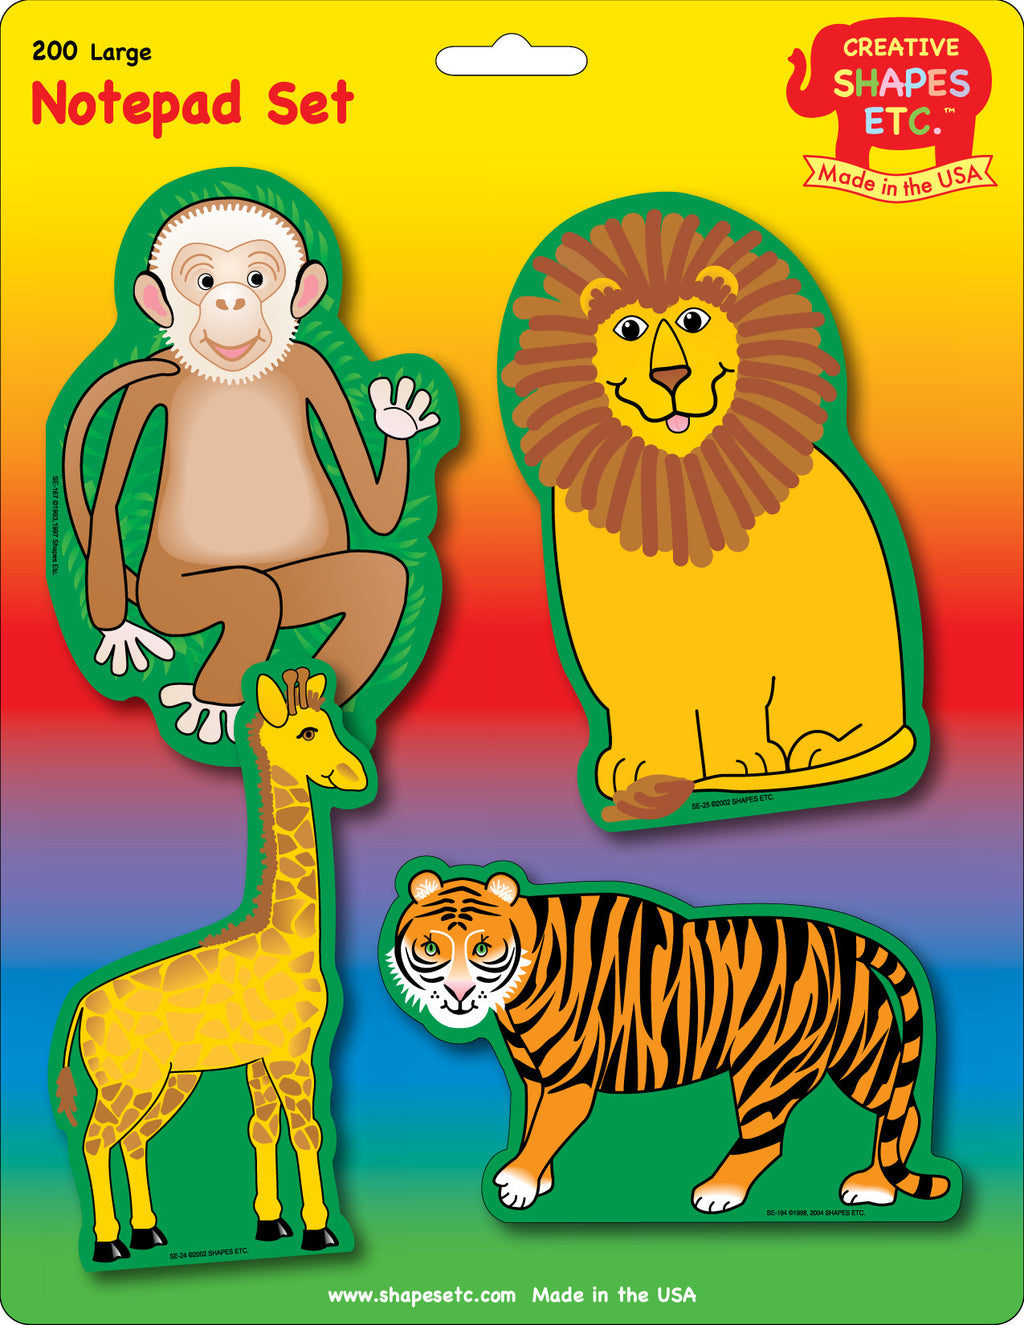 Large Notepad Set - Zoo - Creative Shapes Etc.